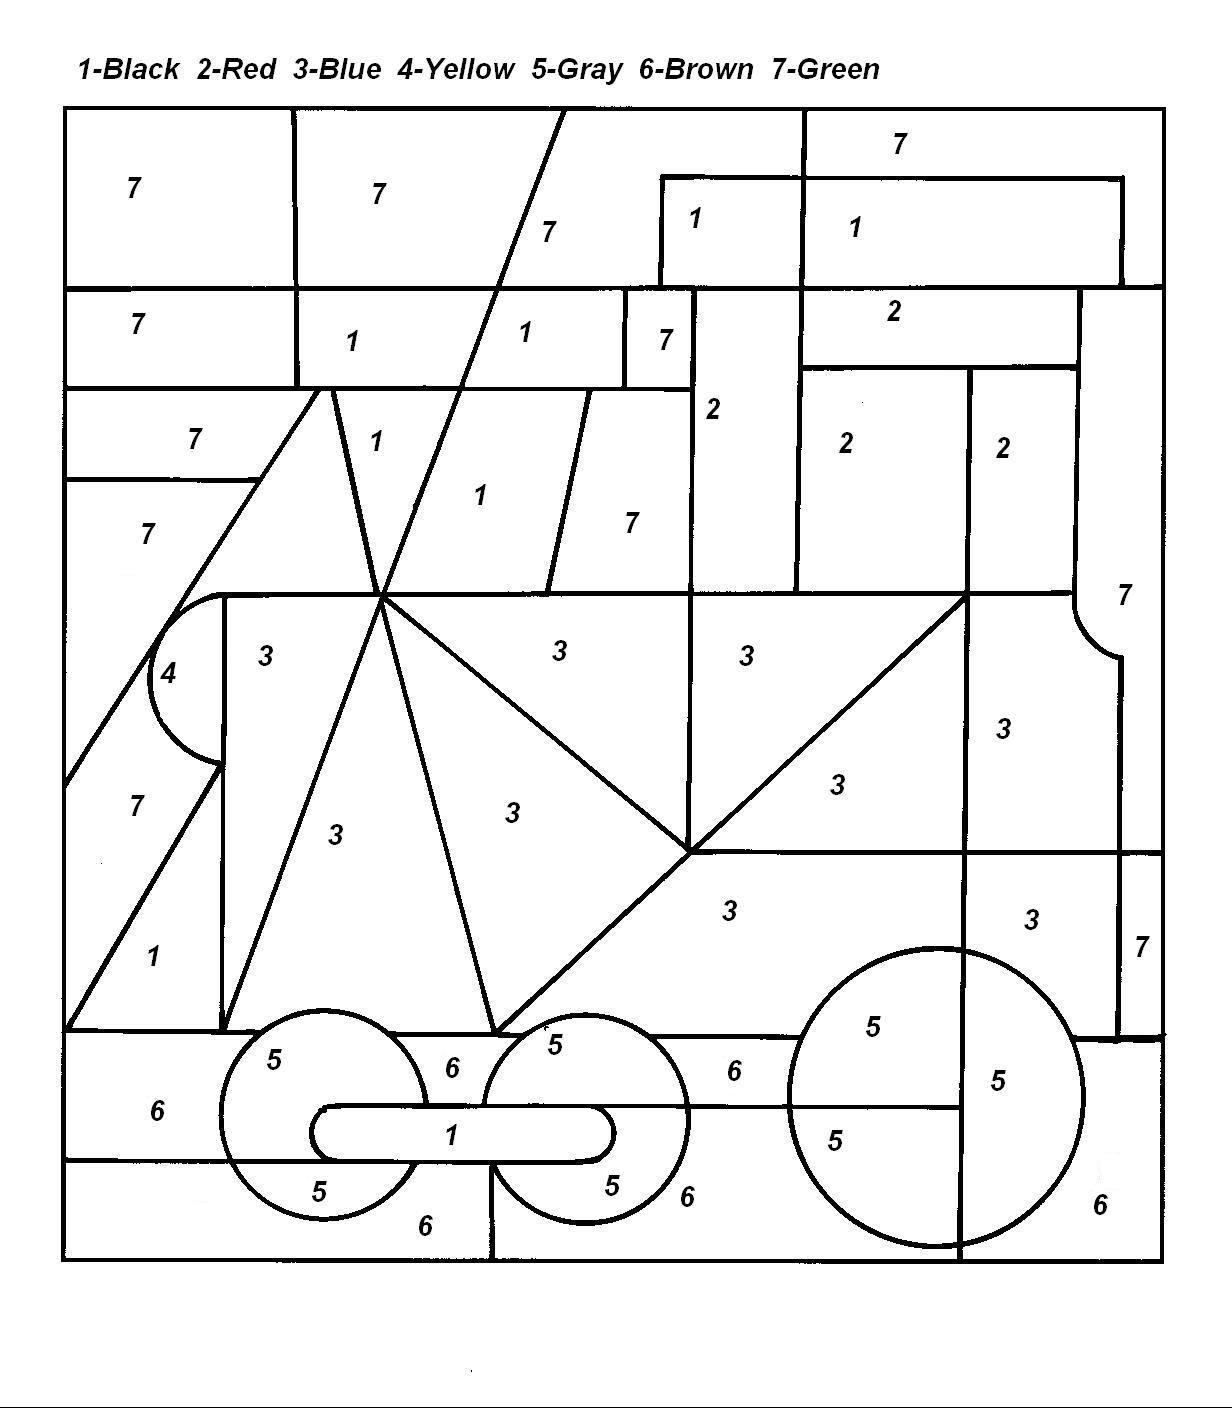 Train boxcar coloring pages - Color By Numbers Page Print Your Free Color By Numbers Page At Allkidsnetwork Com